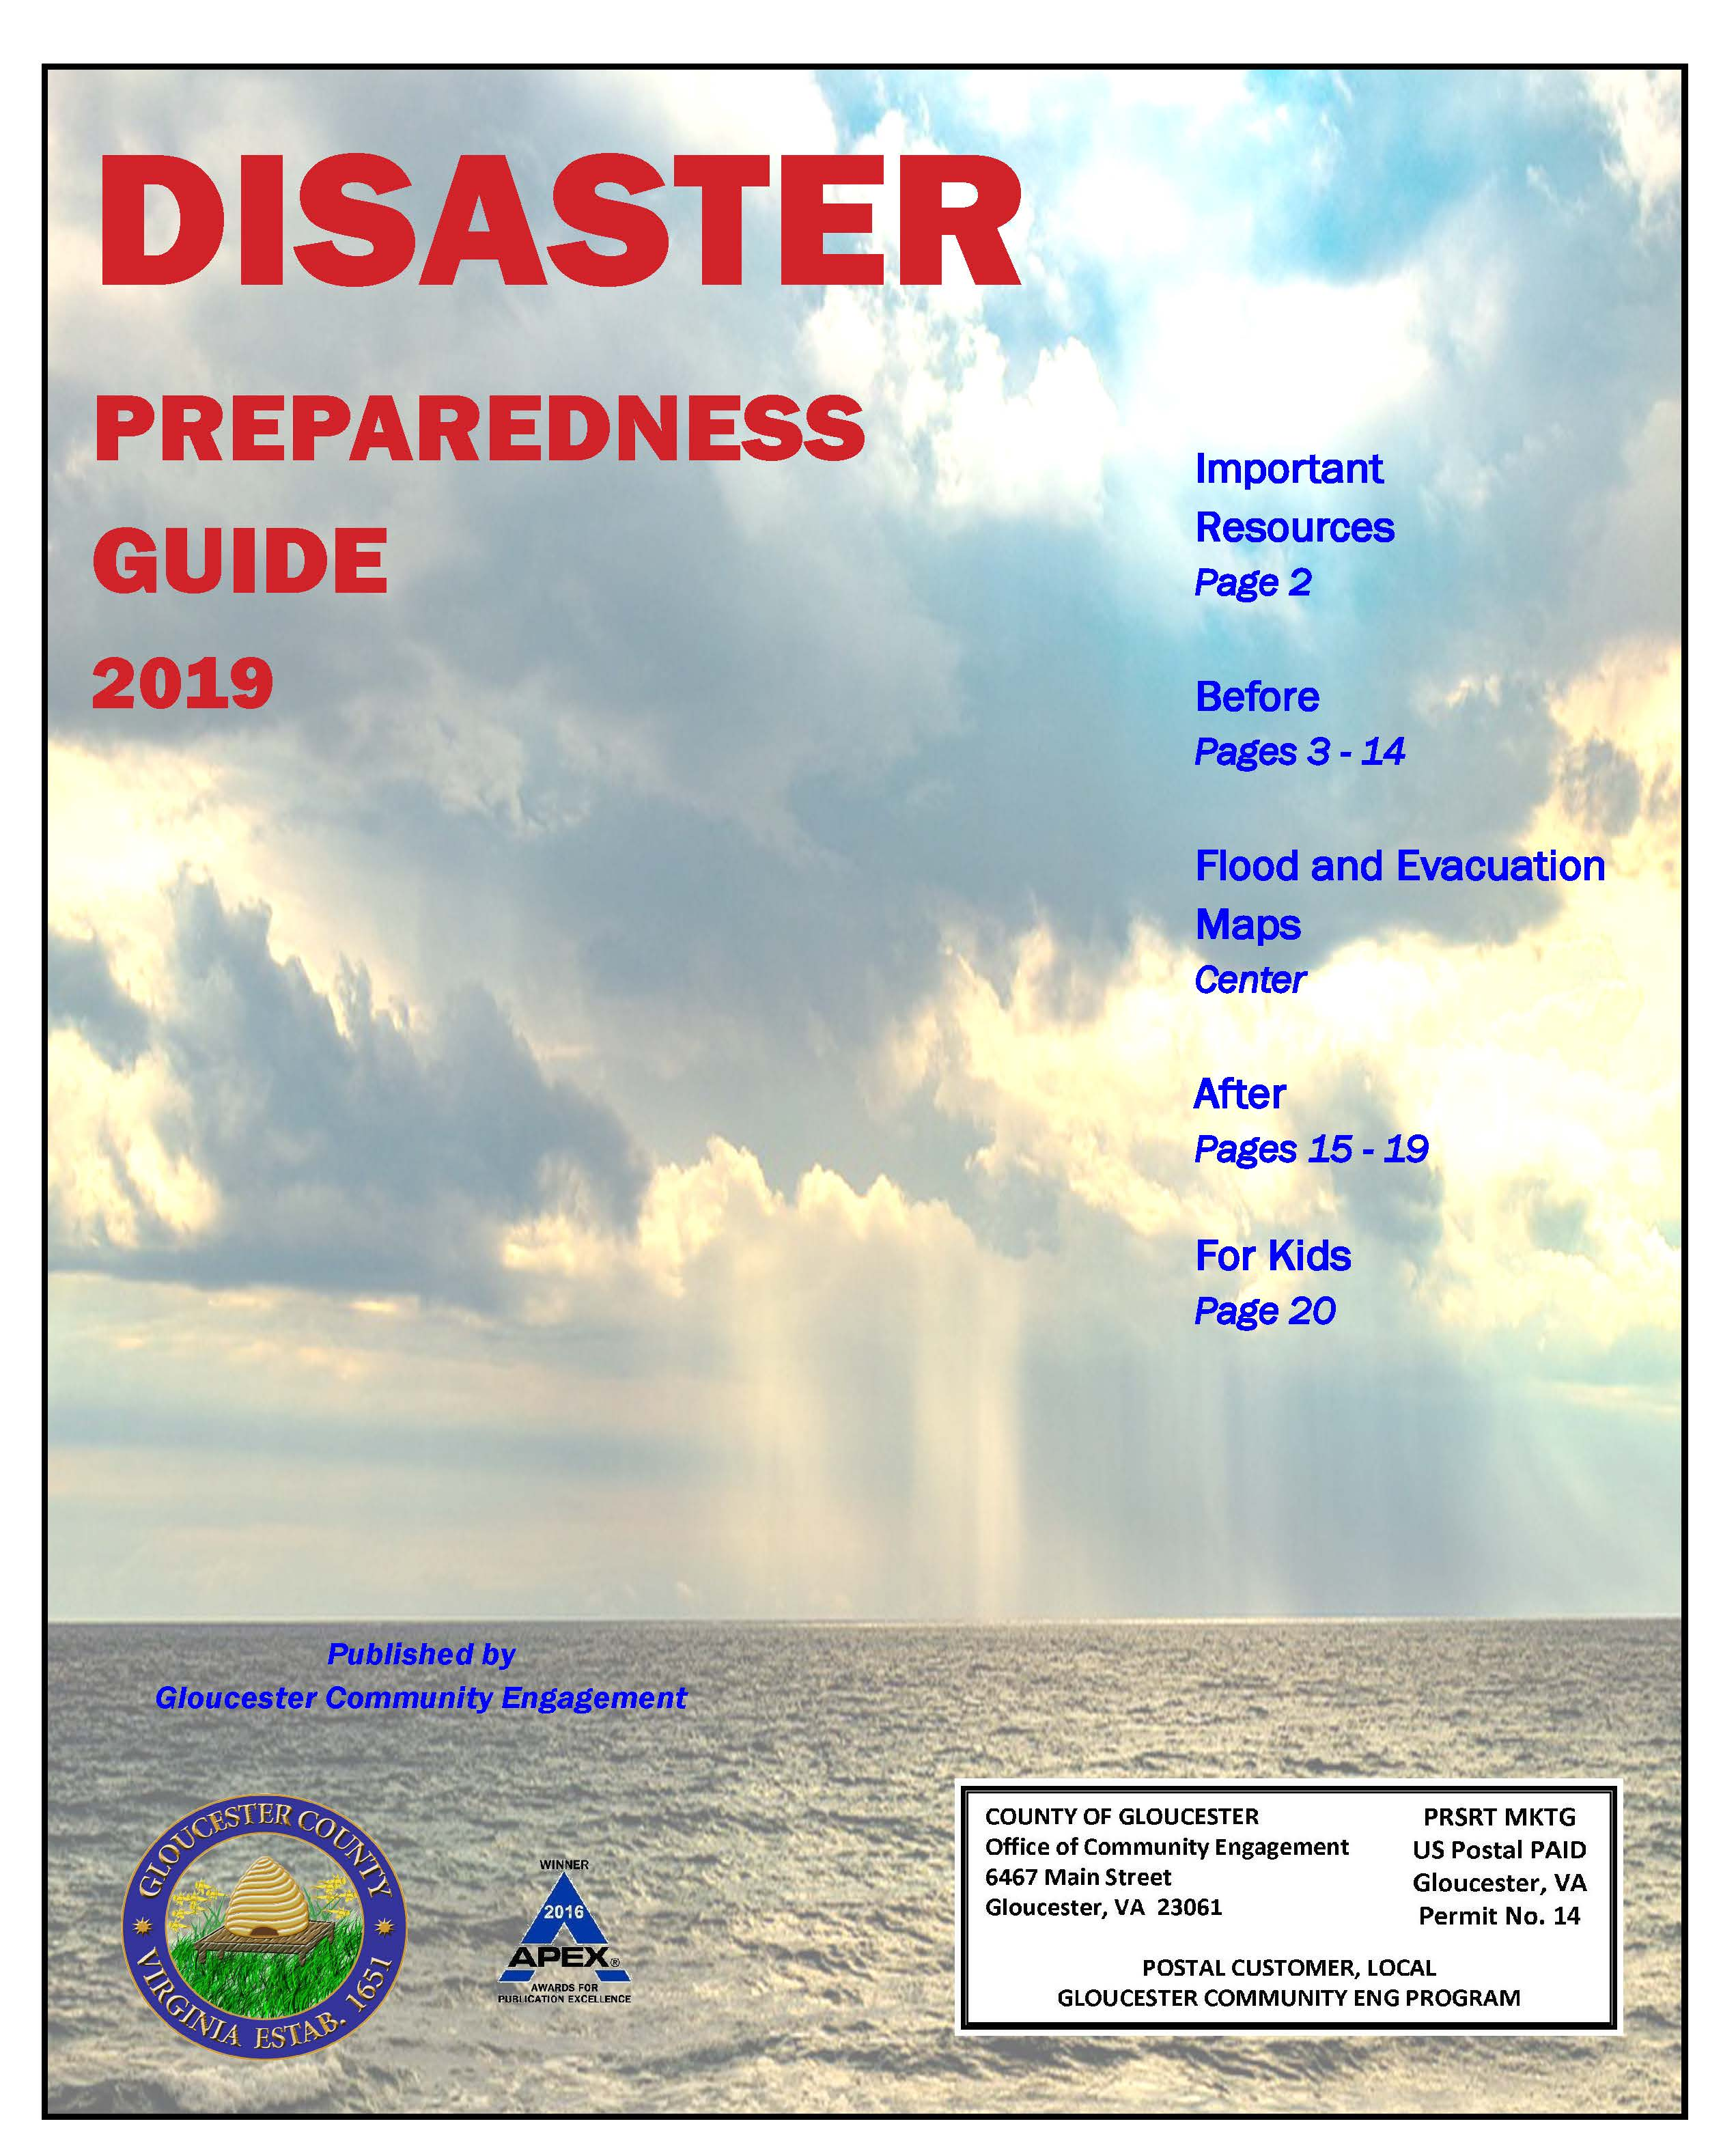 Disaster Preparedness Guide 2019